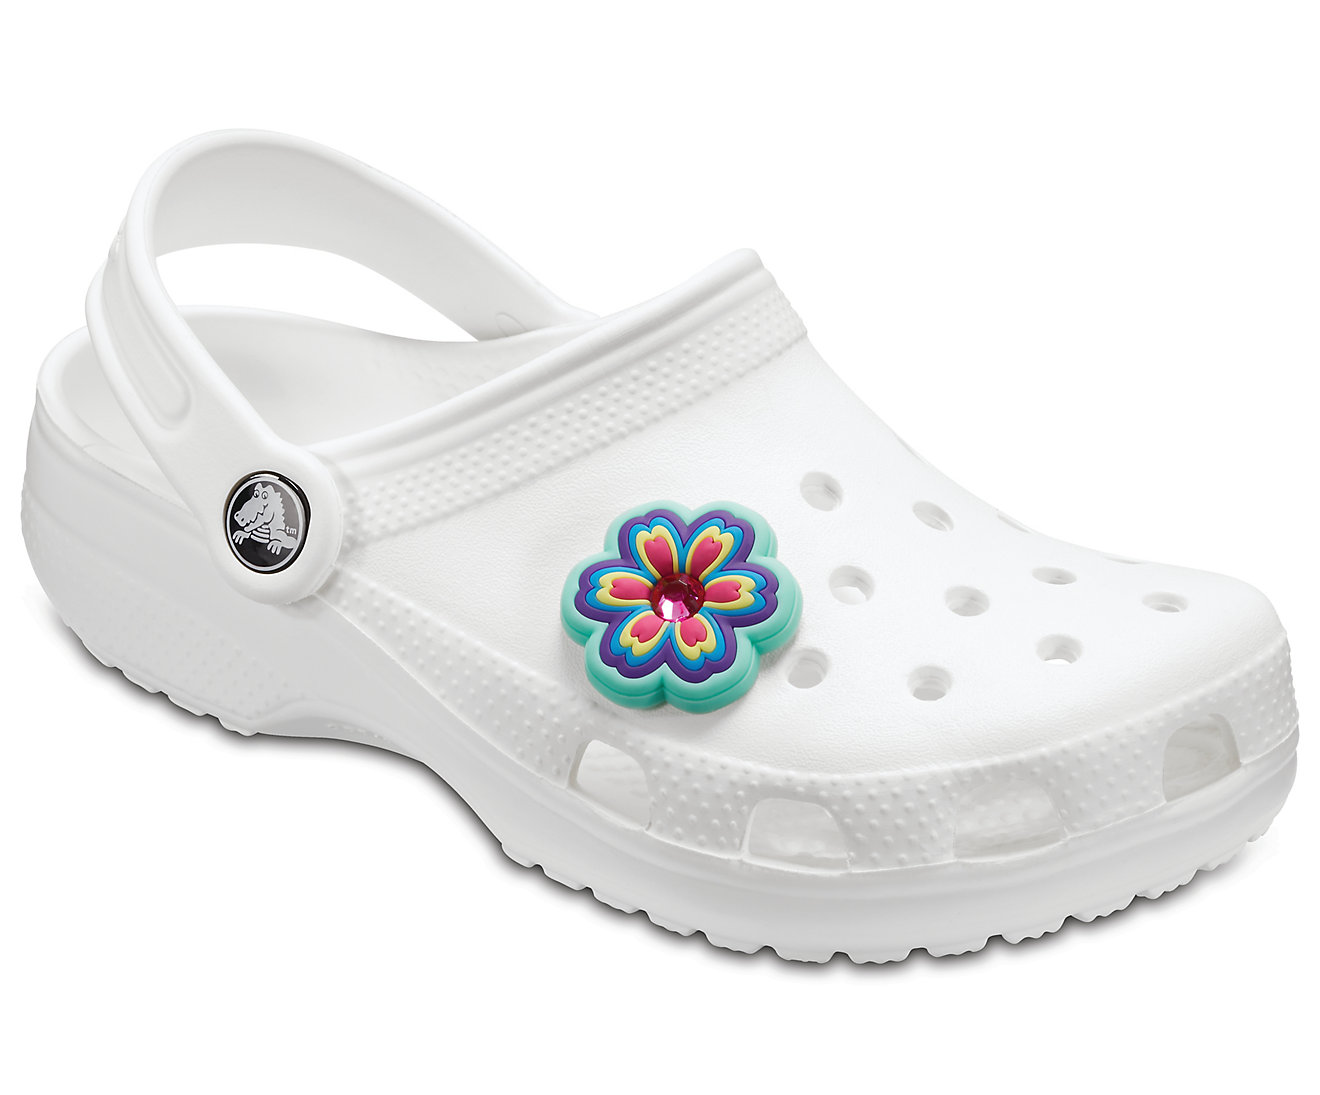 Crocs multicolor Rhinestone Rainbow Flower